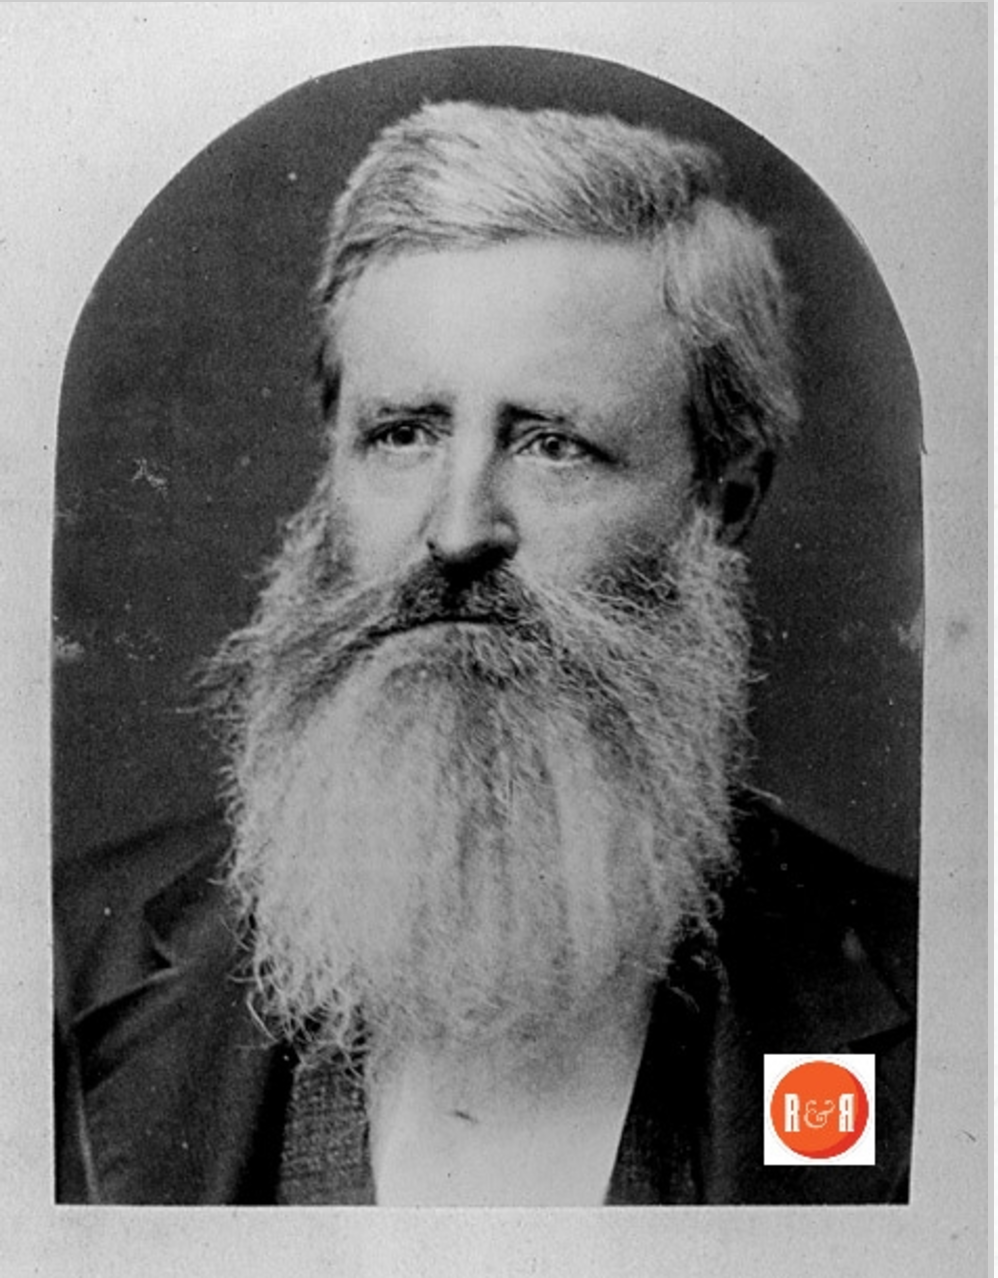 A.E. Hutchison of Rock Hill was the founder and developer of the mill. He was the brother of Anne H. White who resided at the White Home.